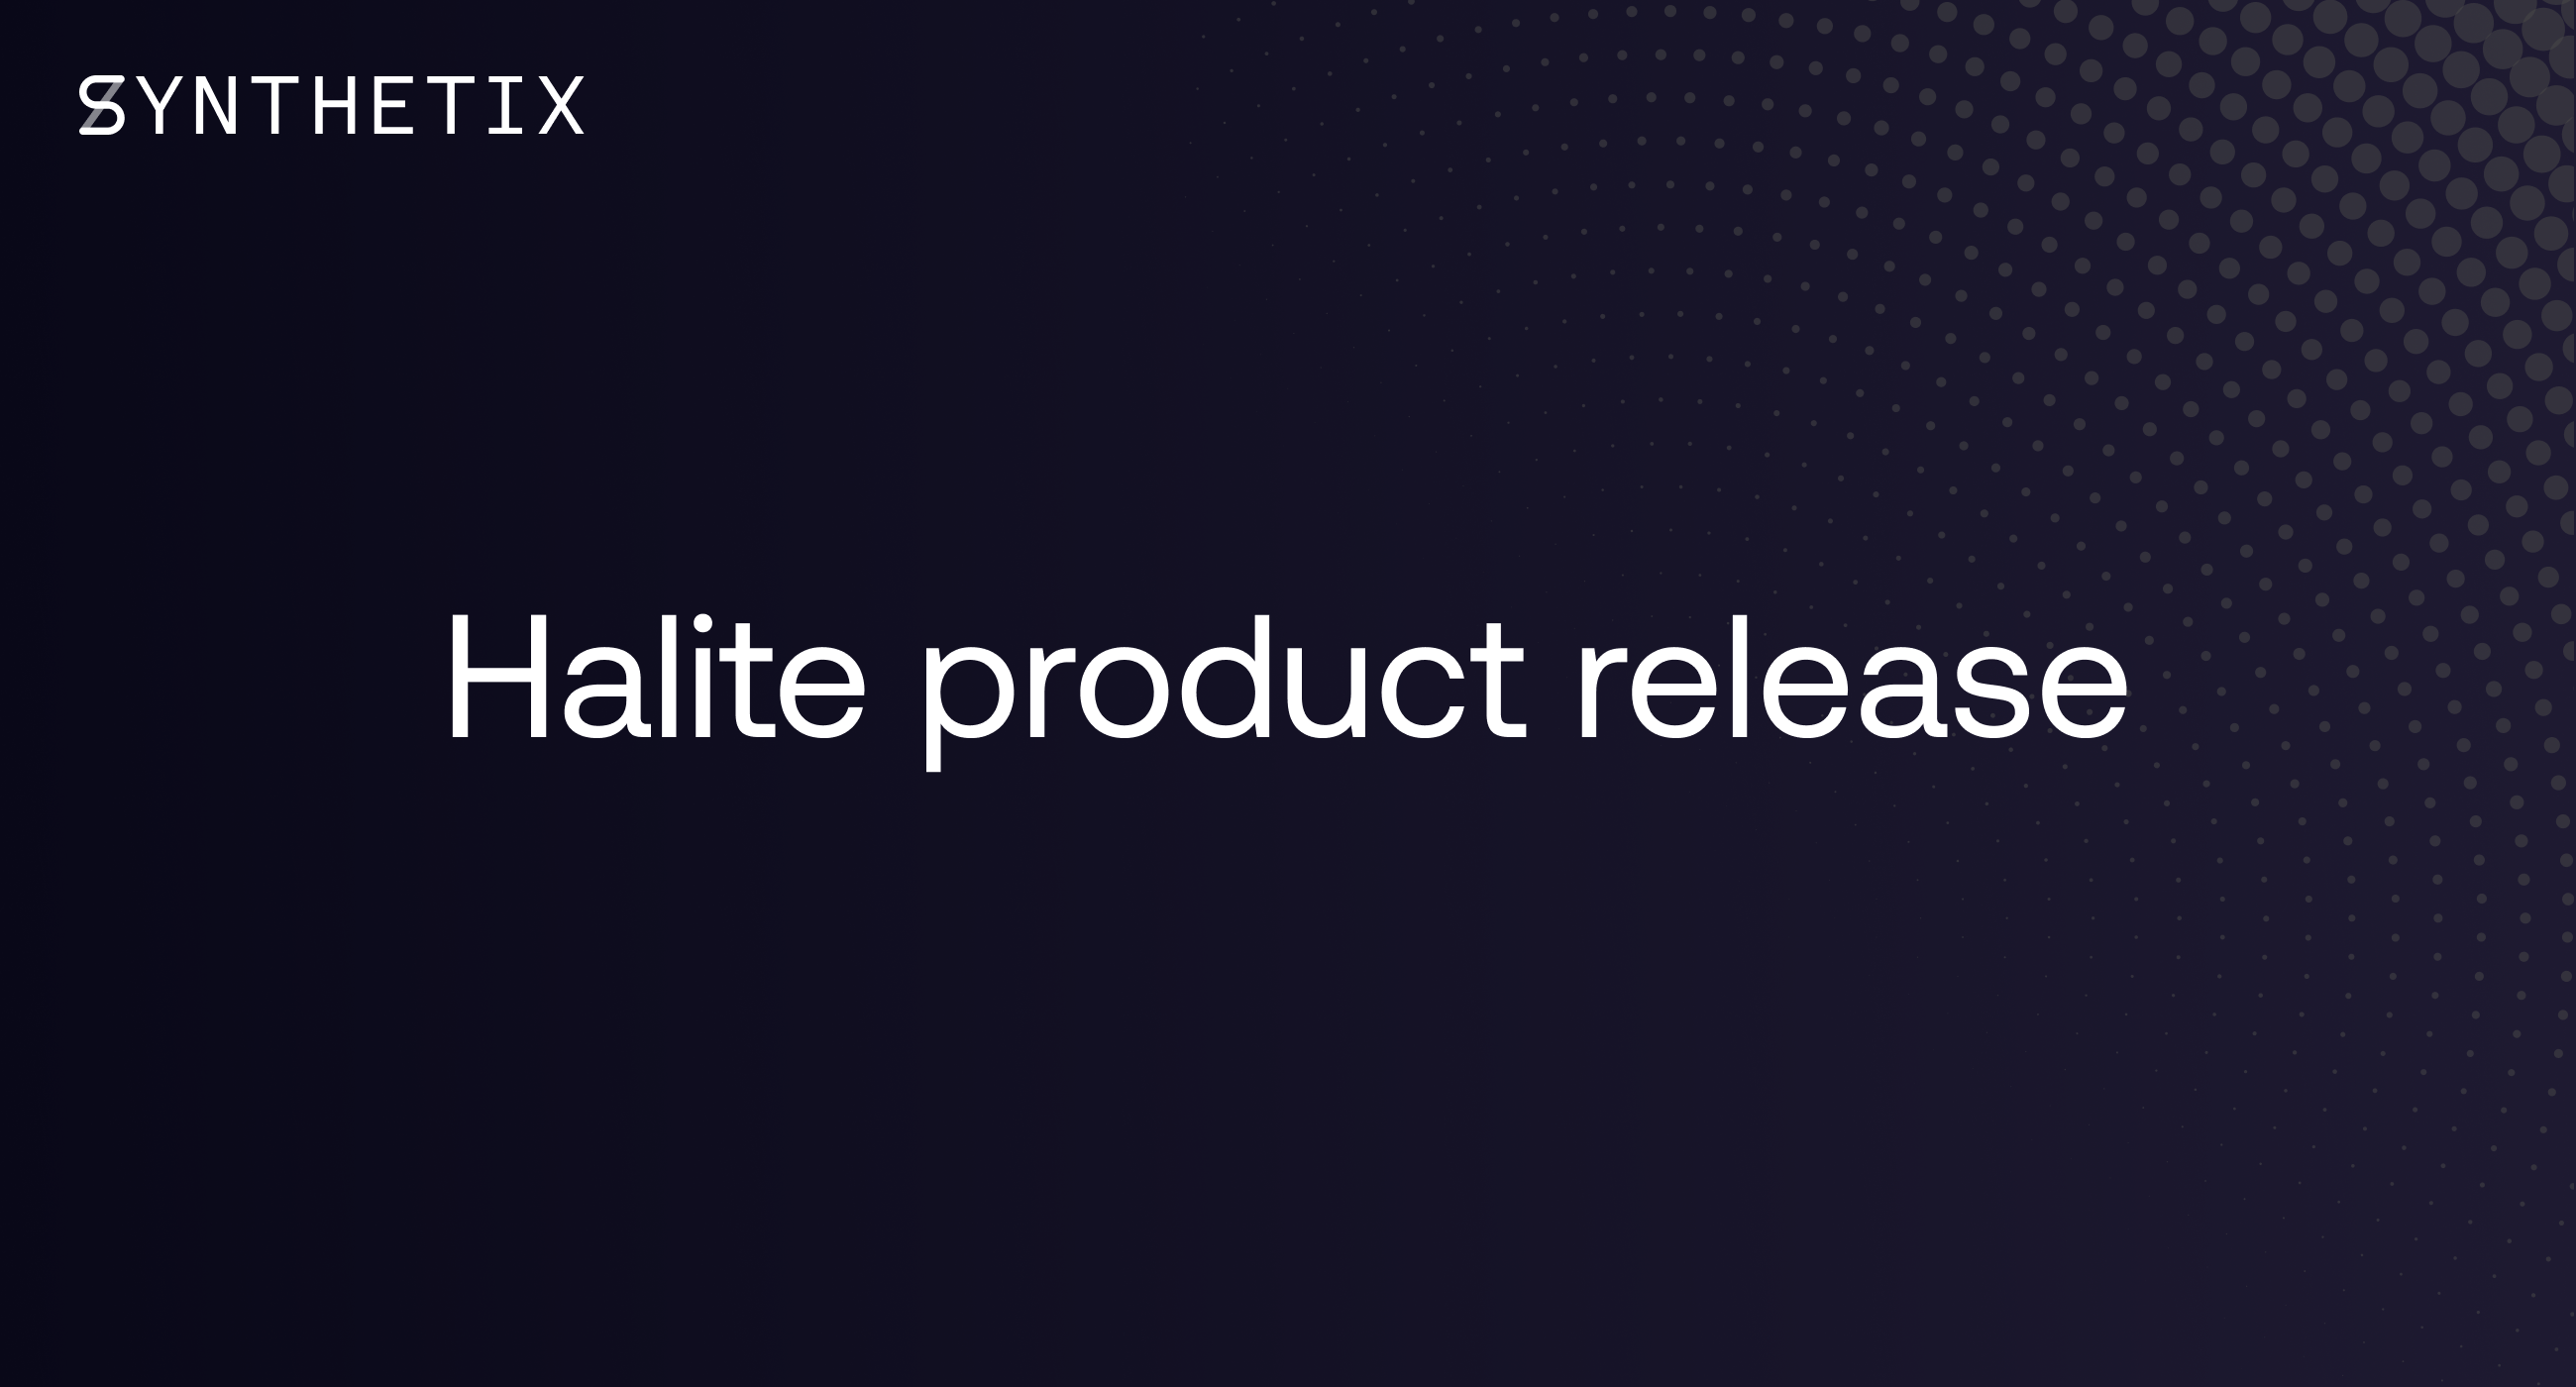 Halite product release